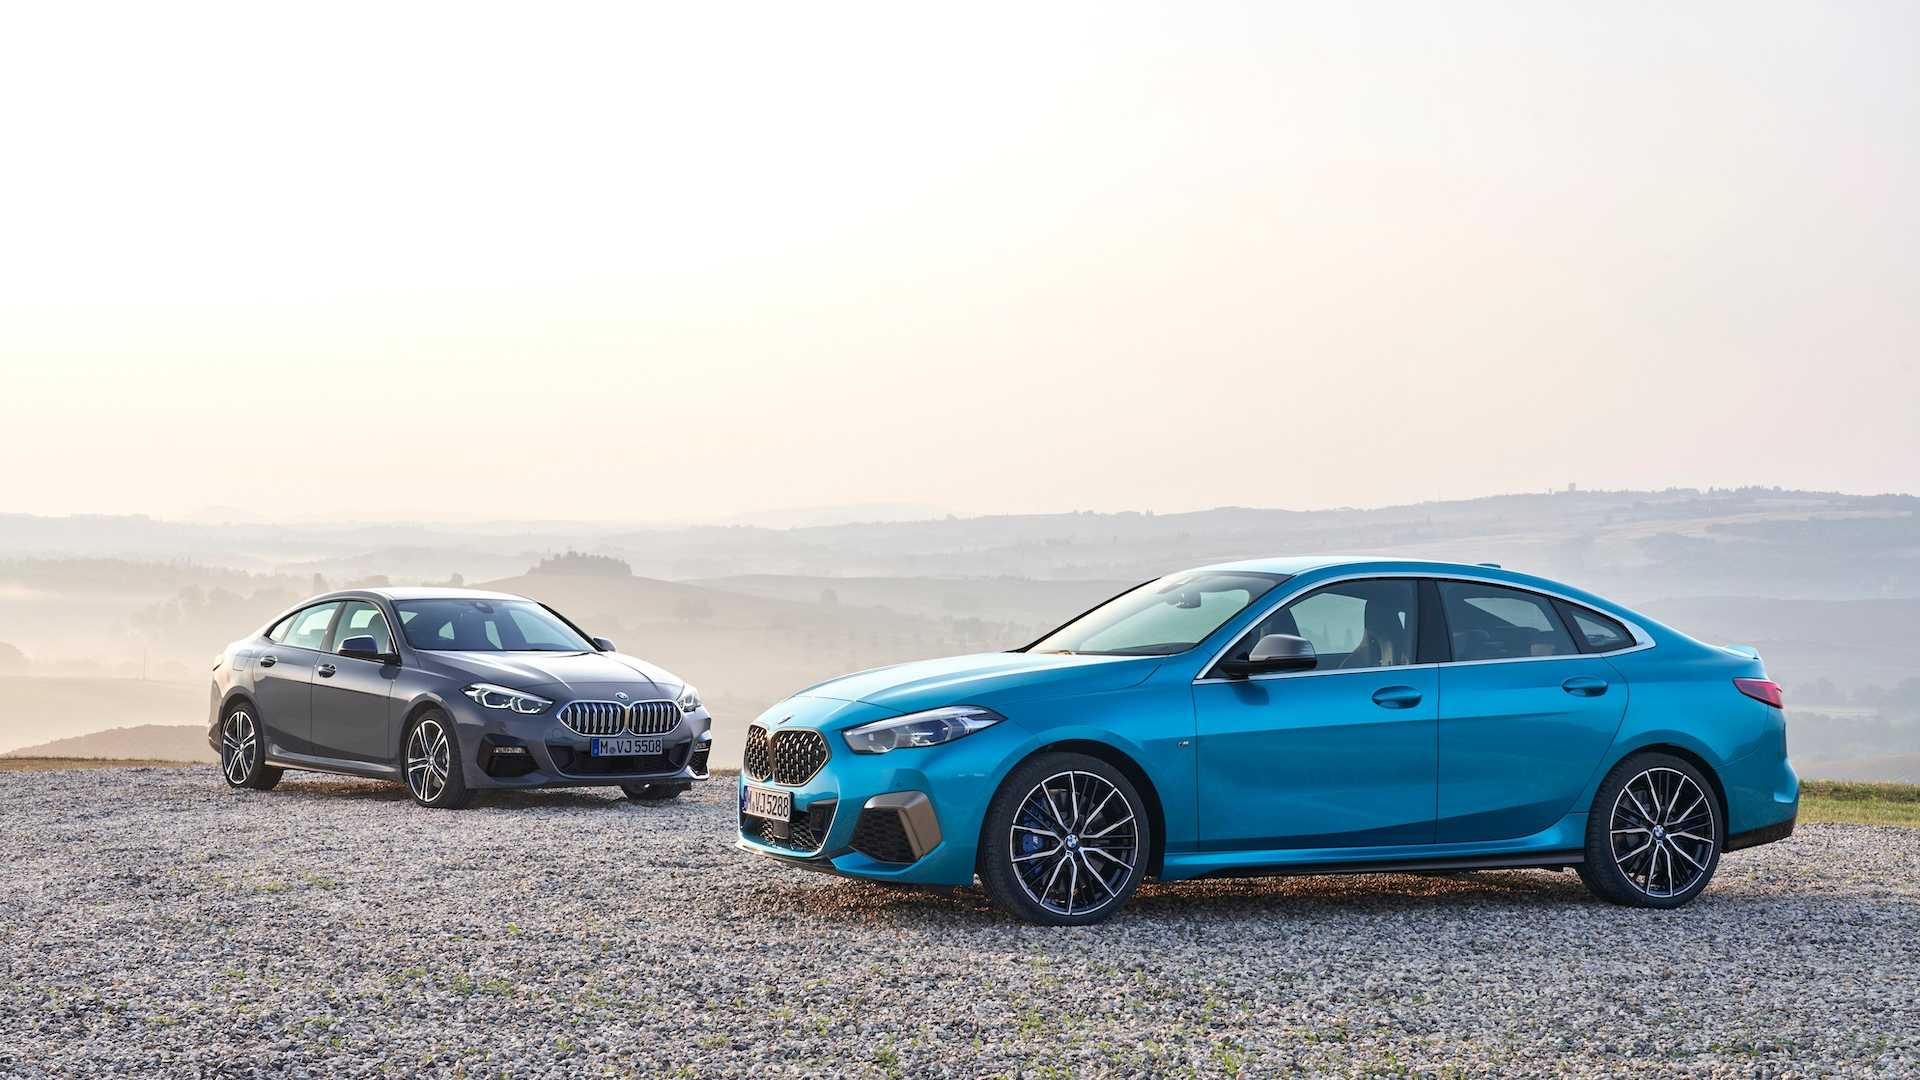 2020-bmw-2-series-gran-coupe-29